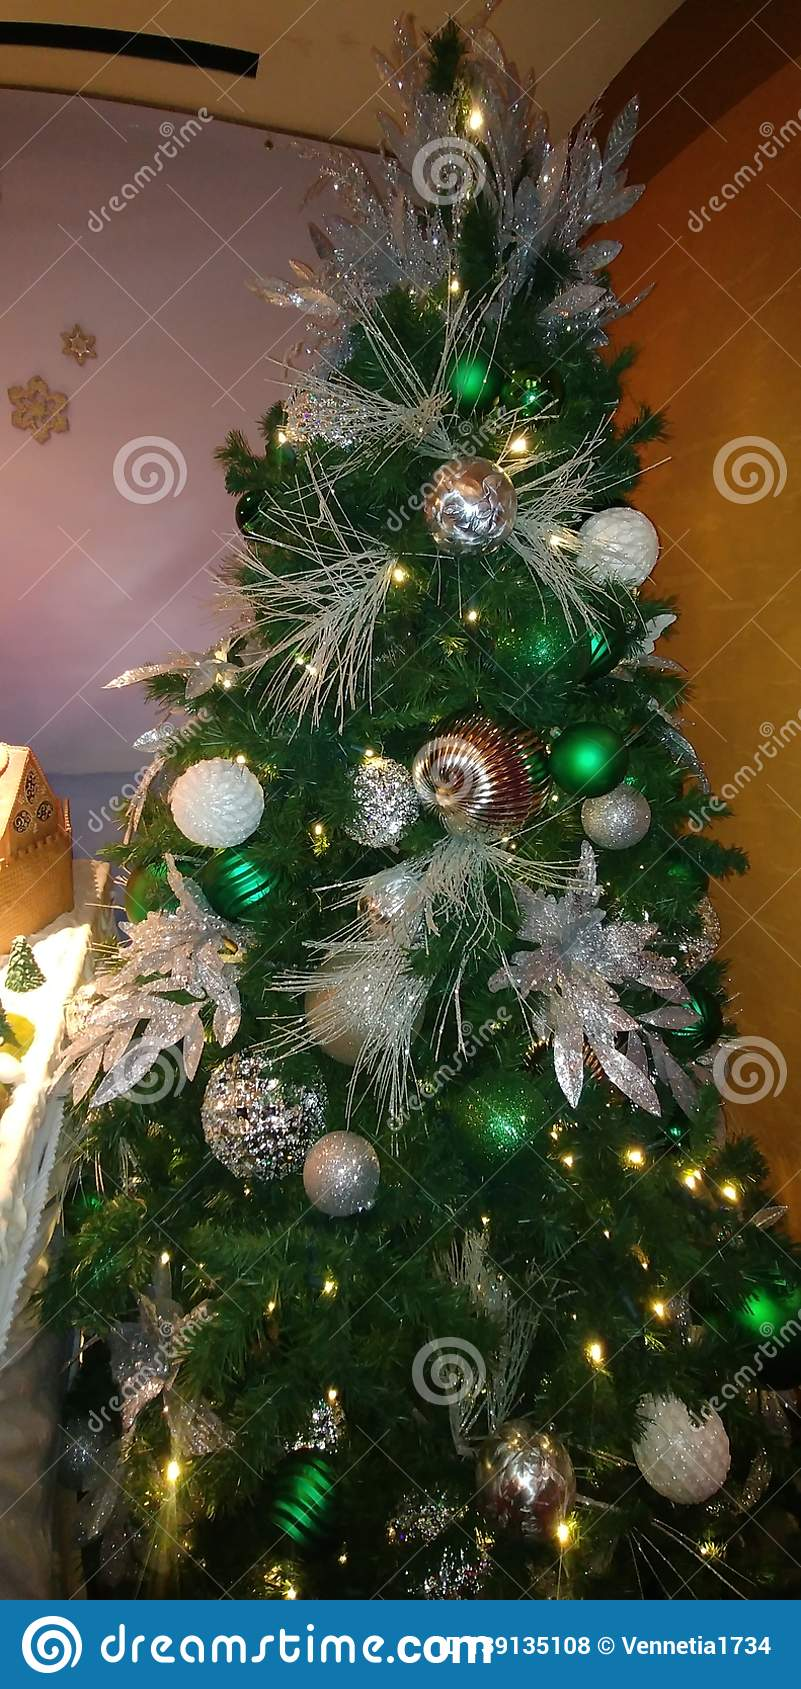 Silver And Gold Green Christmas Tree Stock Photo Image Of Merry Christmas 139135108